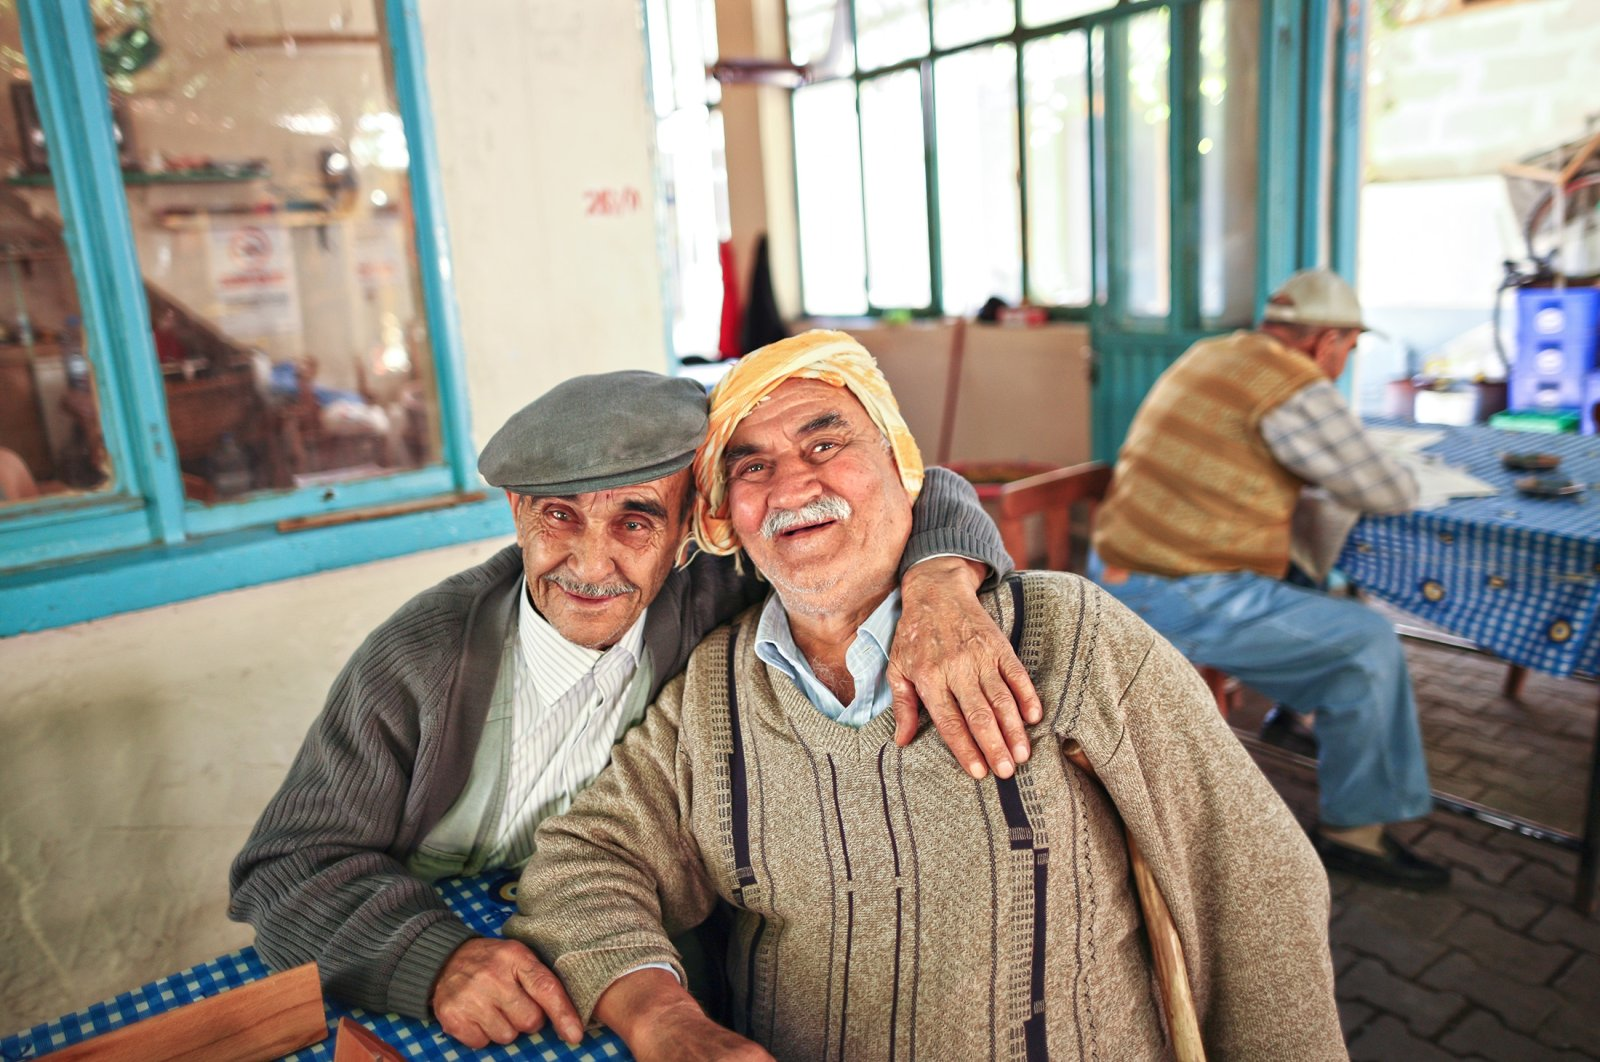 Two best friends hug each other in a traditional tea house in the Seferihisar district of Izmir, western Turkey, October 24, 2009. (Shutterstock Photo)